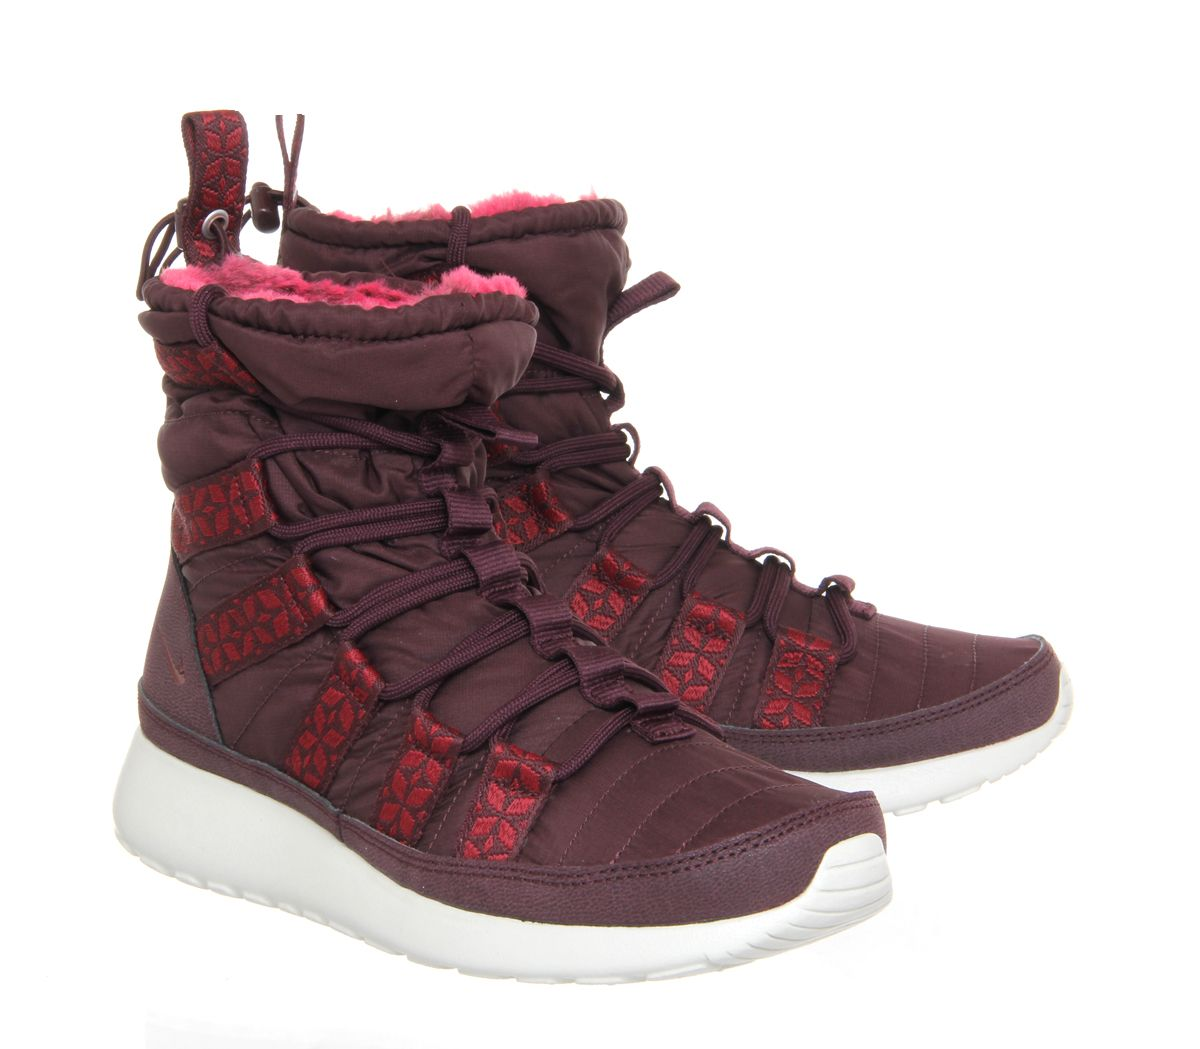 wholesale dealer c1a4c 59bdc Nike Roshe Run Hi Sneaker Boot Deep Burgundy - Hers trainers